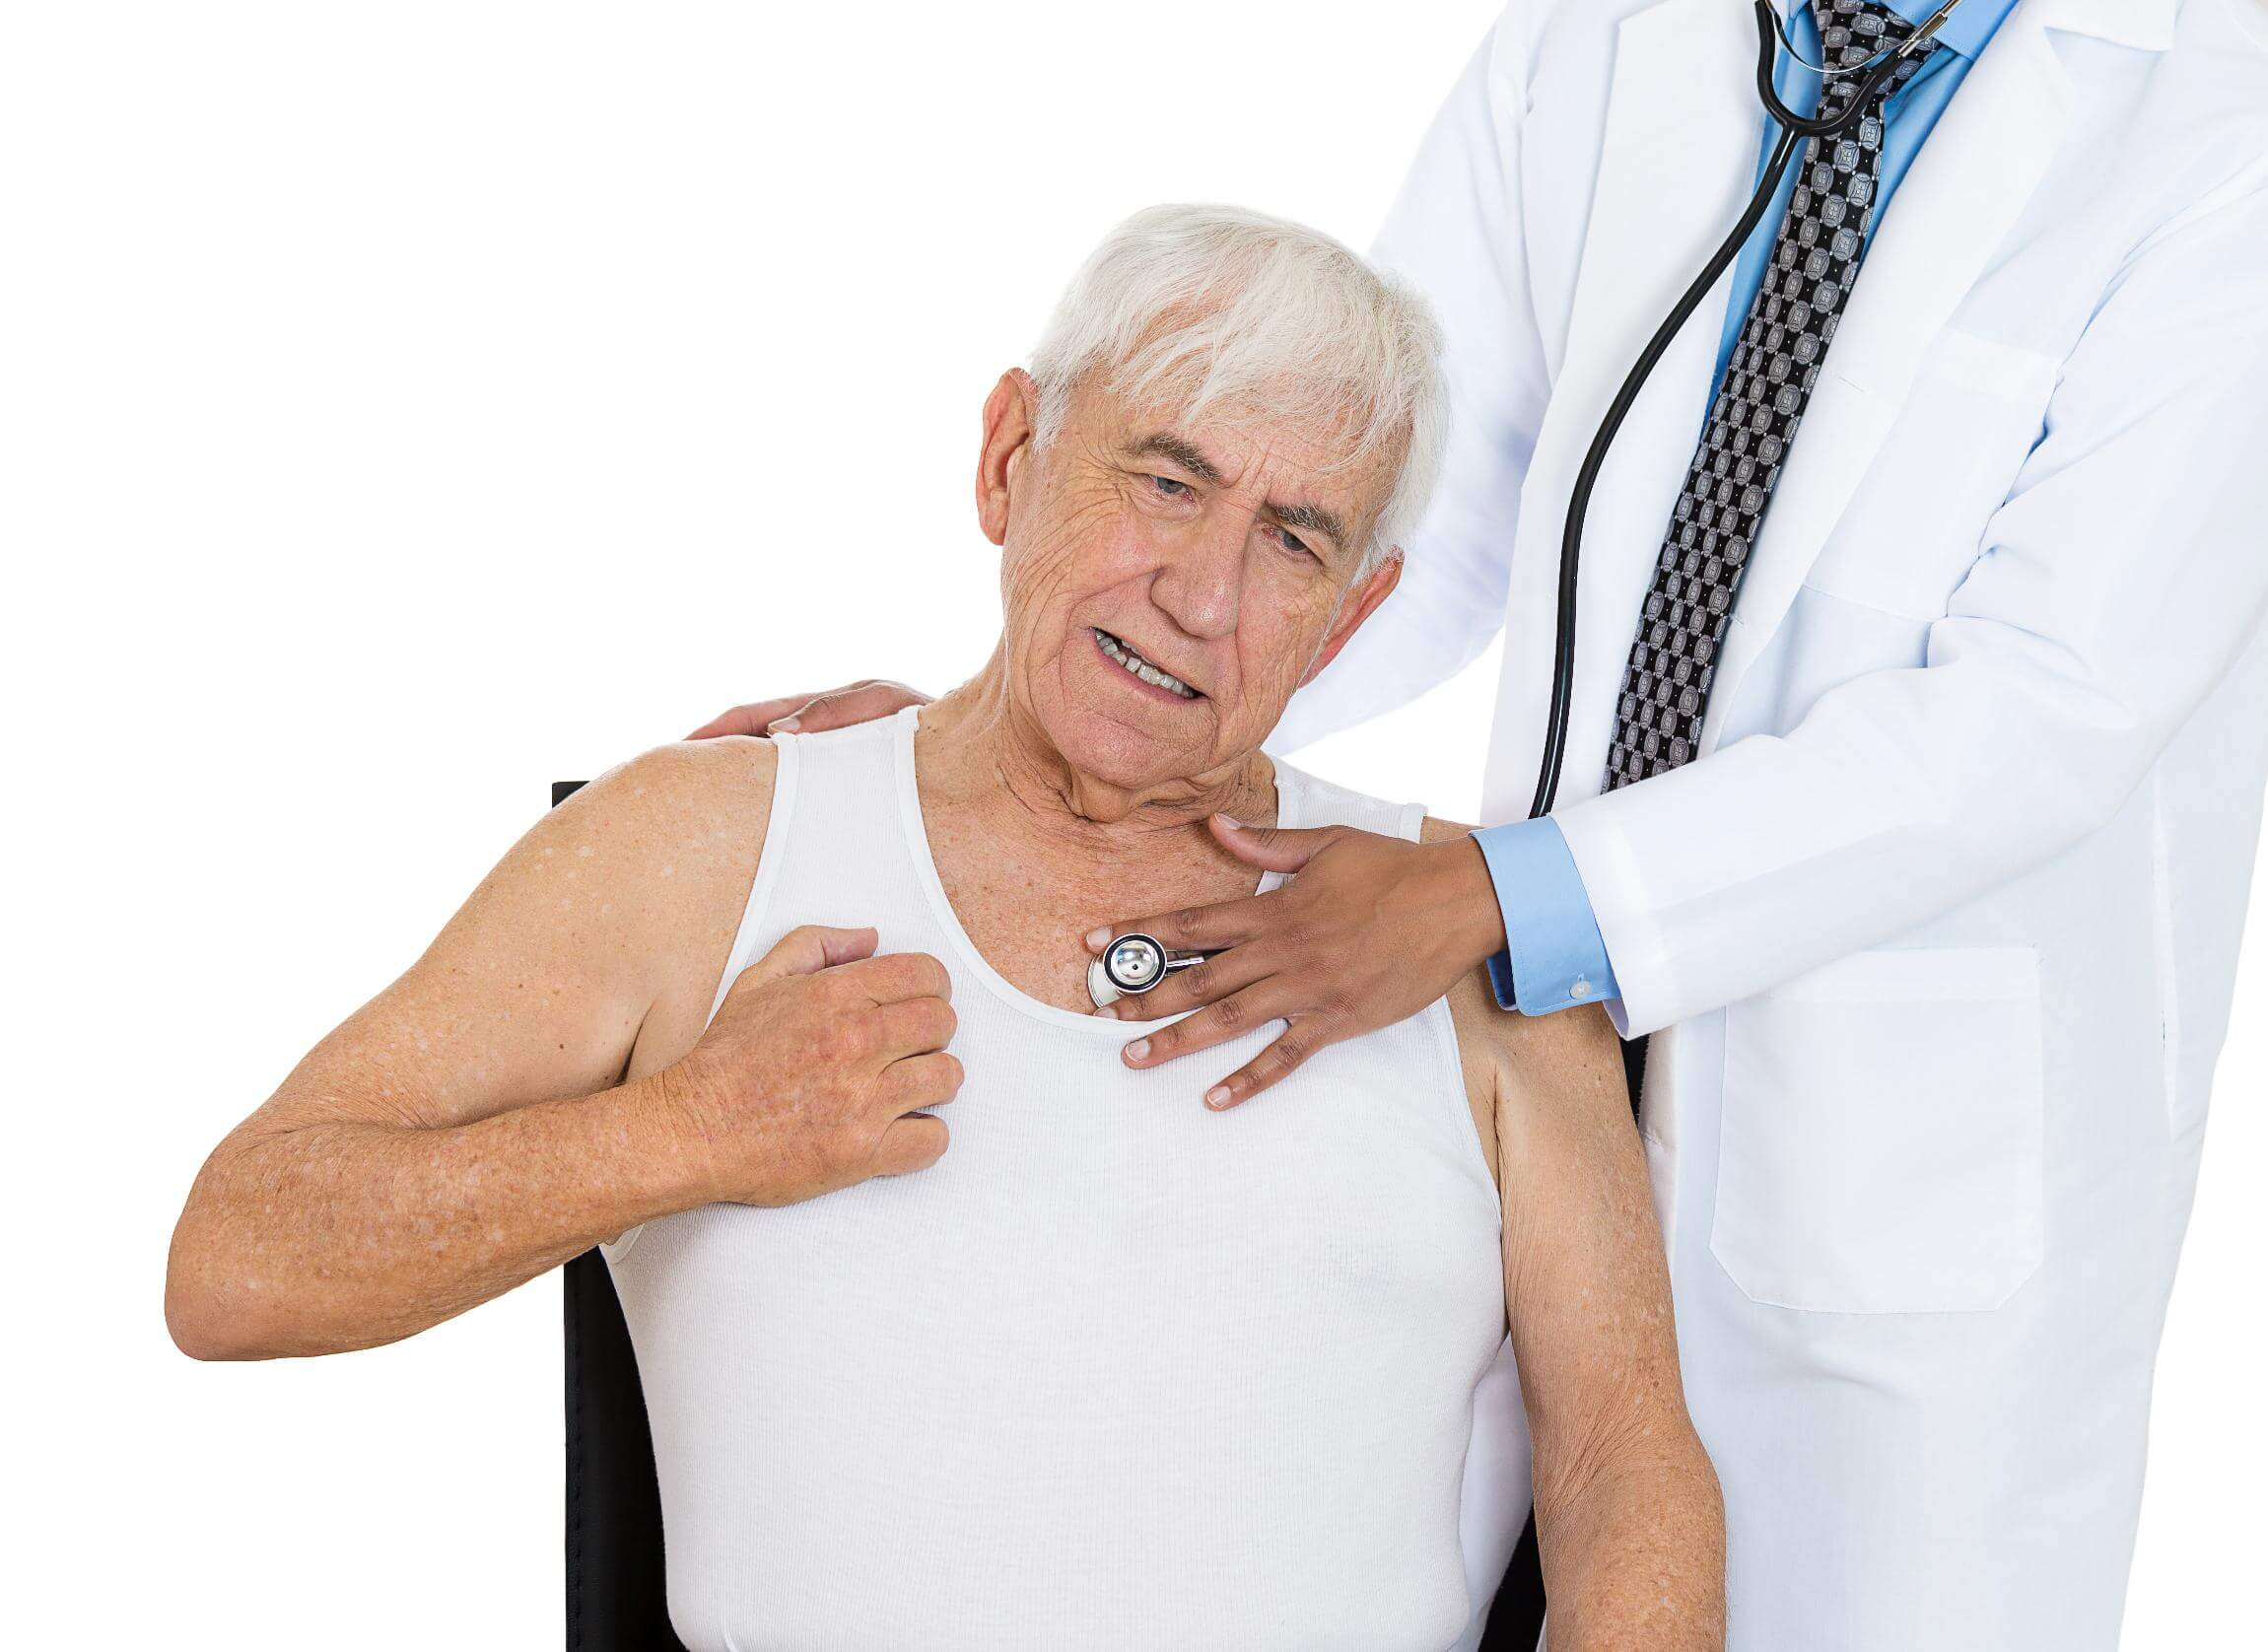 Closeup cropped portrait doctor performing heart, lungs, physical exam listening with stethoscope, on elderly, senior, mature man who has chest pain, sitting on black chair, isolated white background